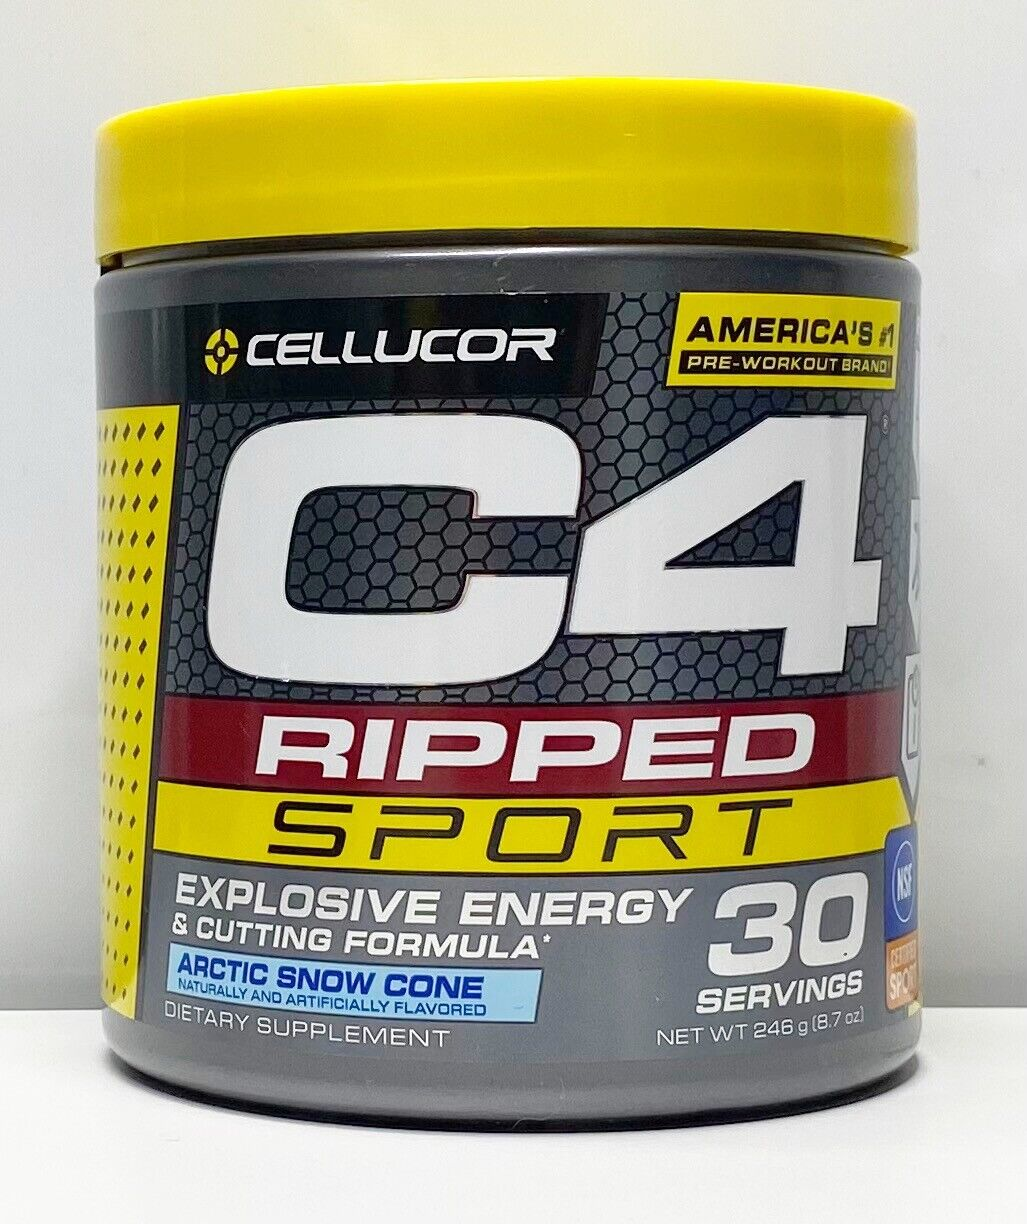 Cellucor C4 Ripped Sport 30 Servings Pre-Workout Artic Snow Cone 8.7oz 03/2023